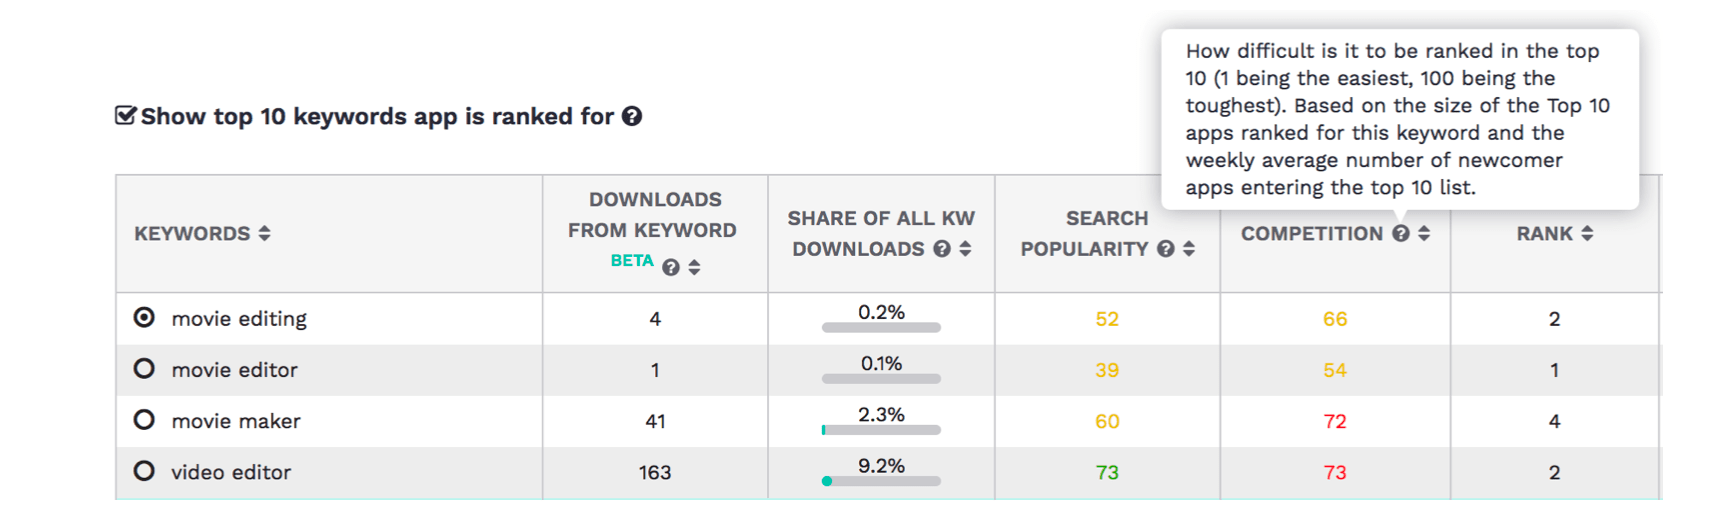 PrioriData uses their download estimates for the broader app economy also for their difficulty metric.